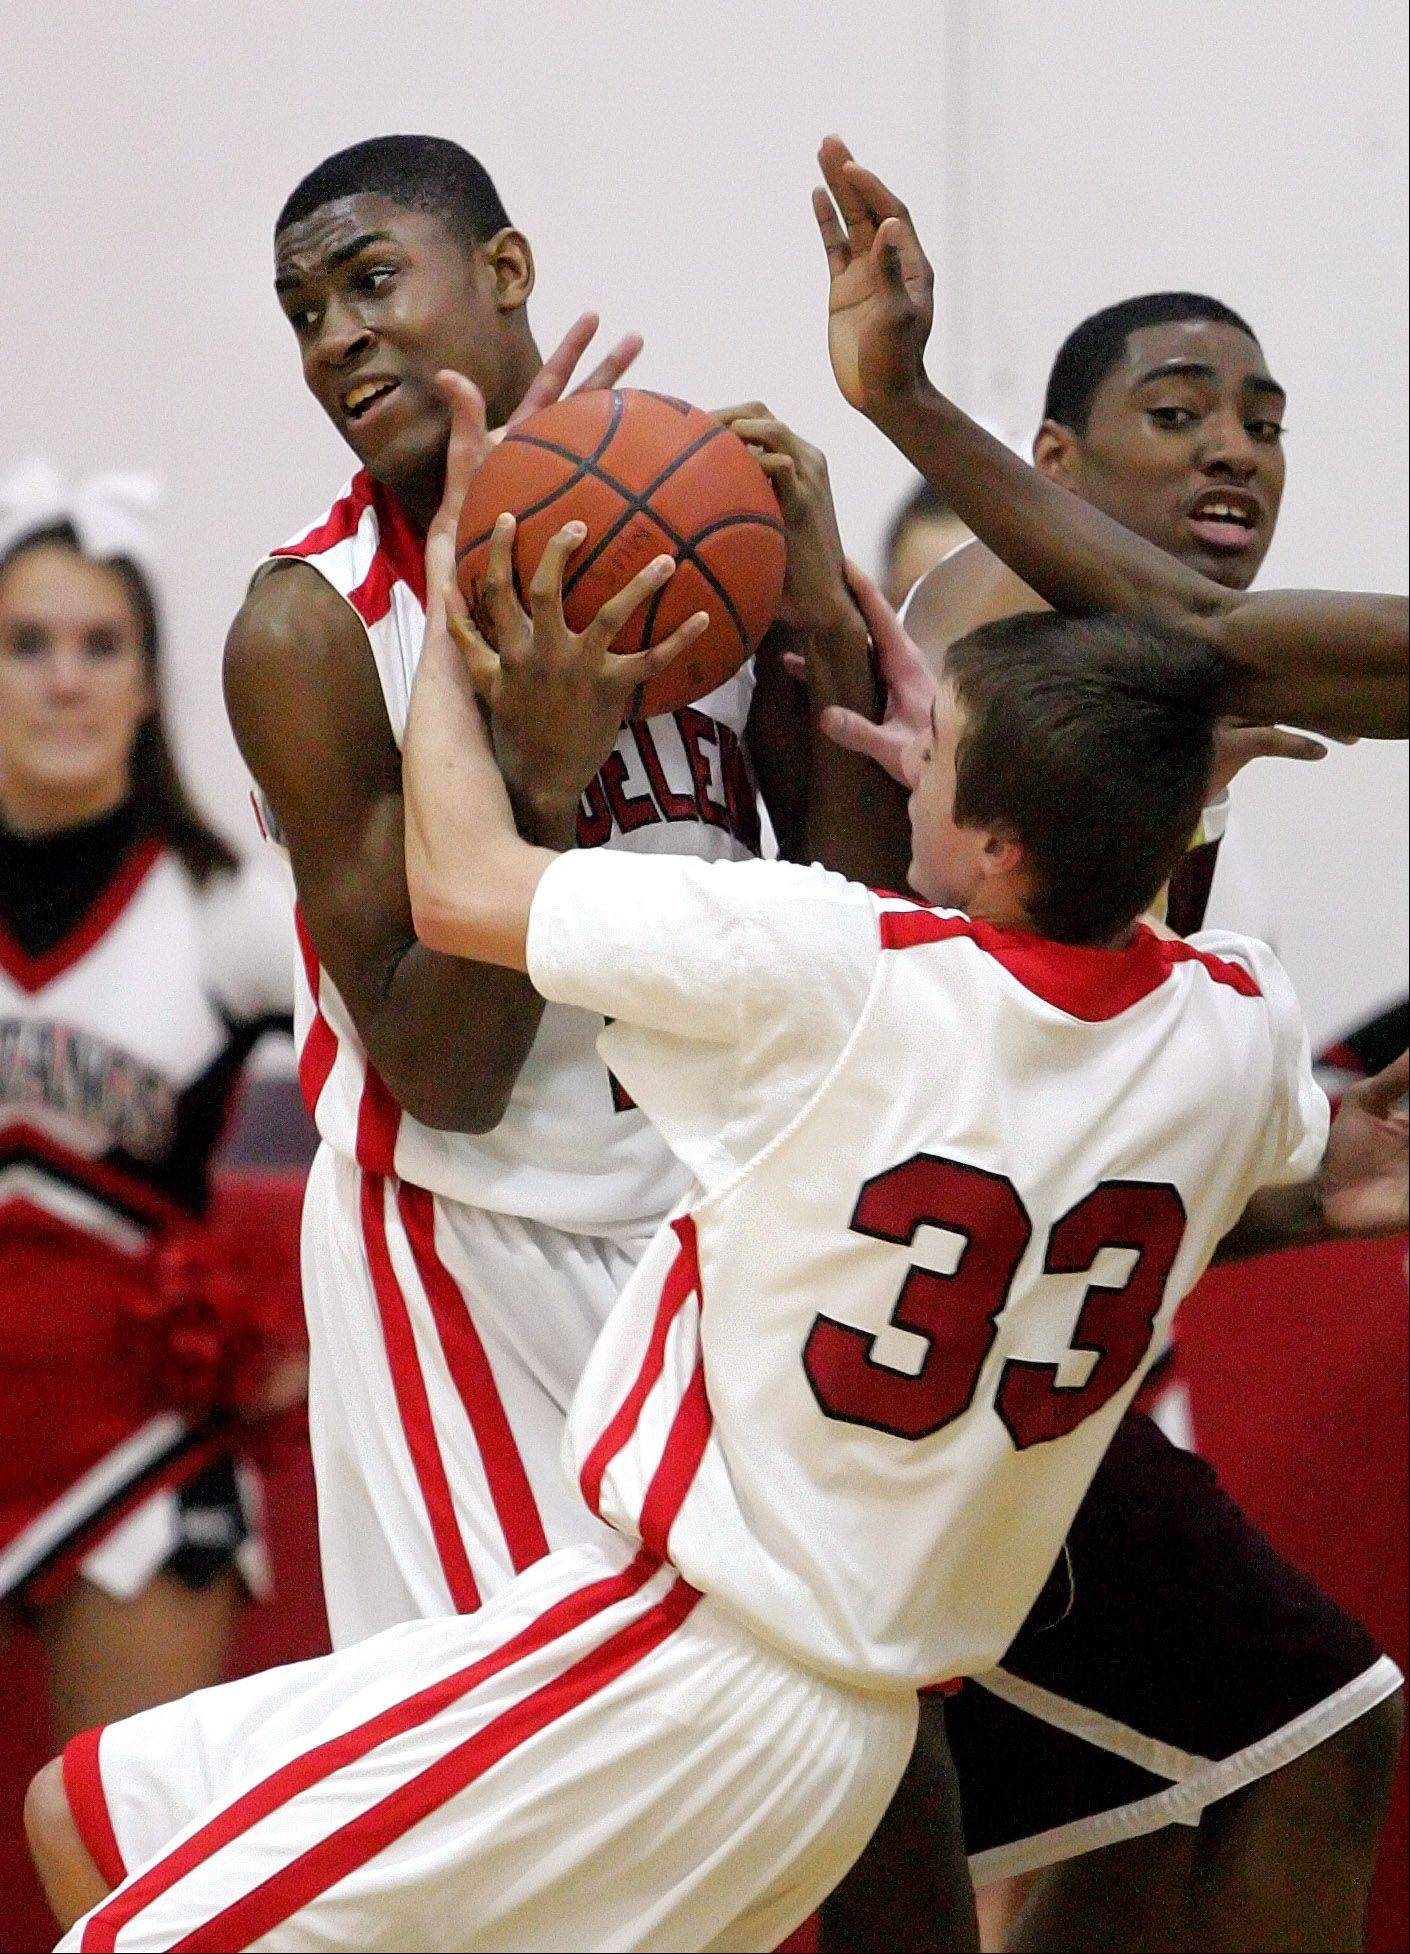 Mundelein's Chino Ebube, left, and Sean O'Brien battle for a rebound with Uplift's Corey Gonore during Monday's game at Mundelein High School.